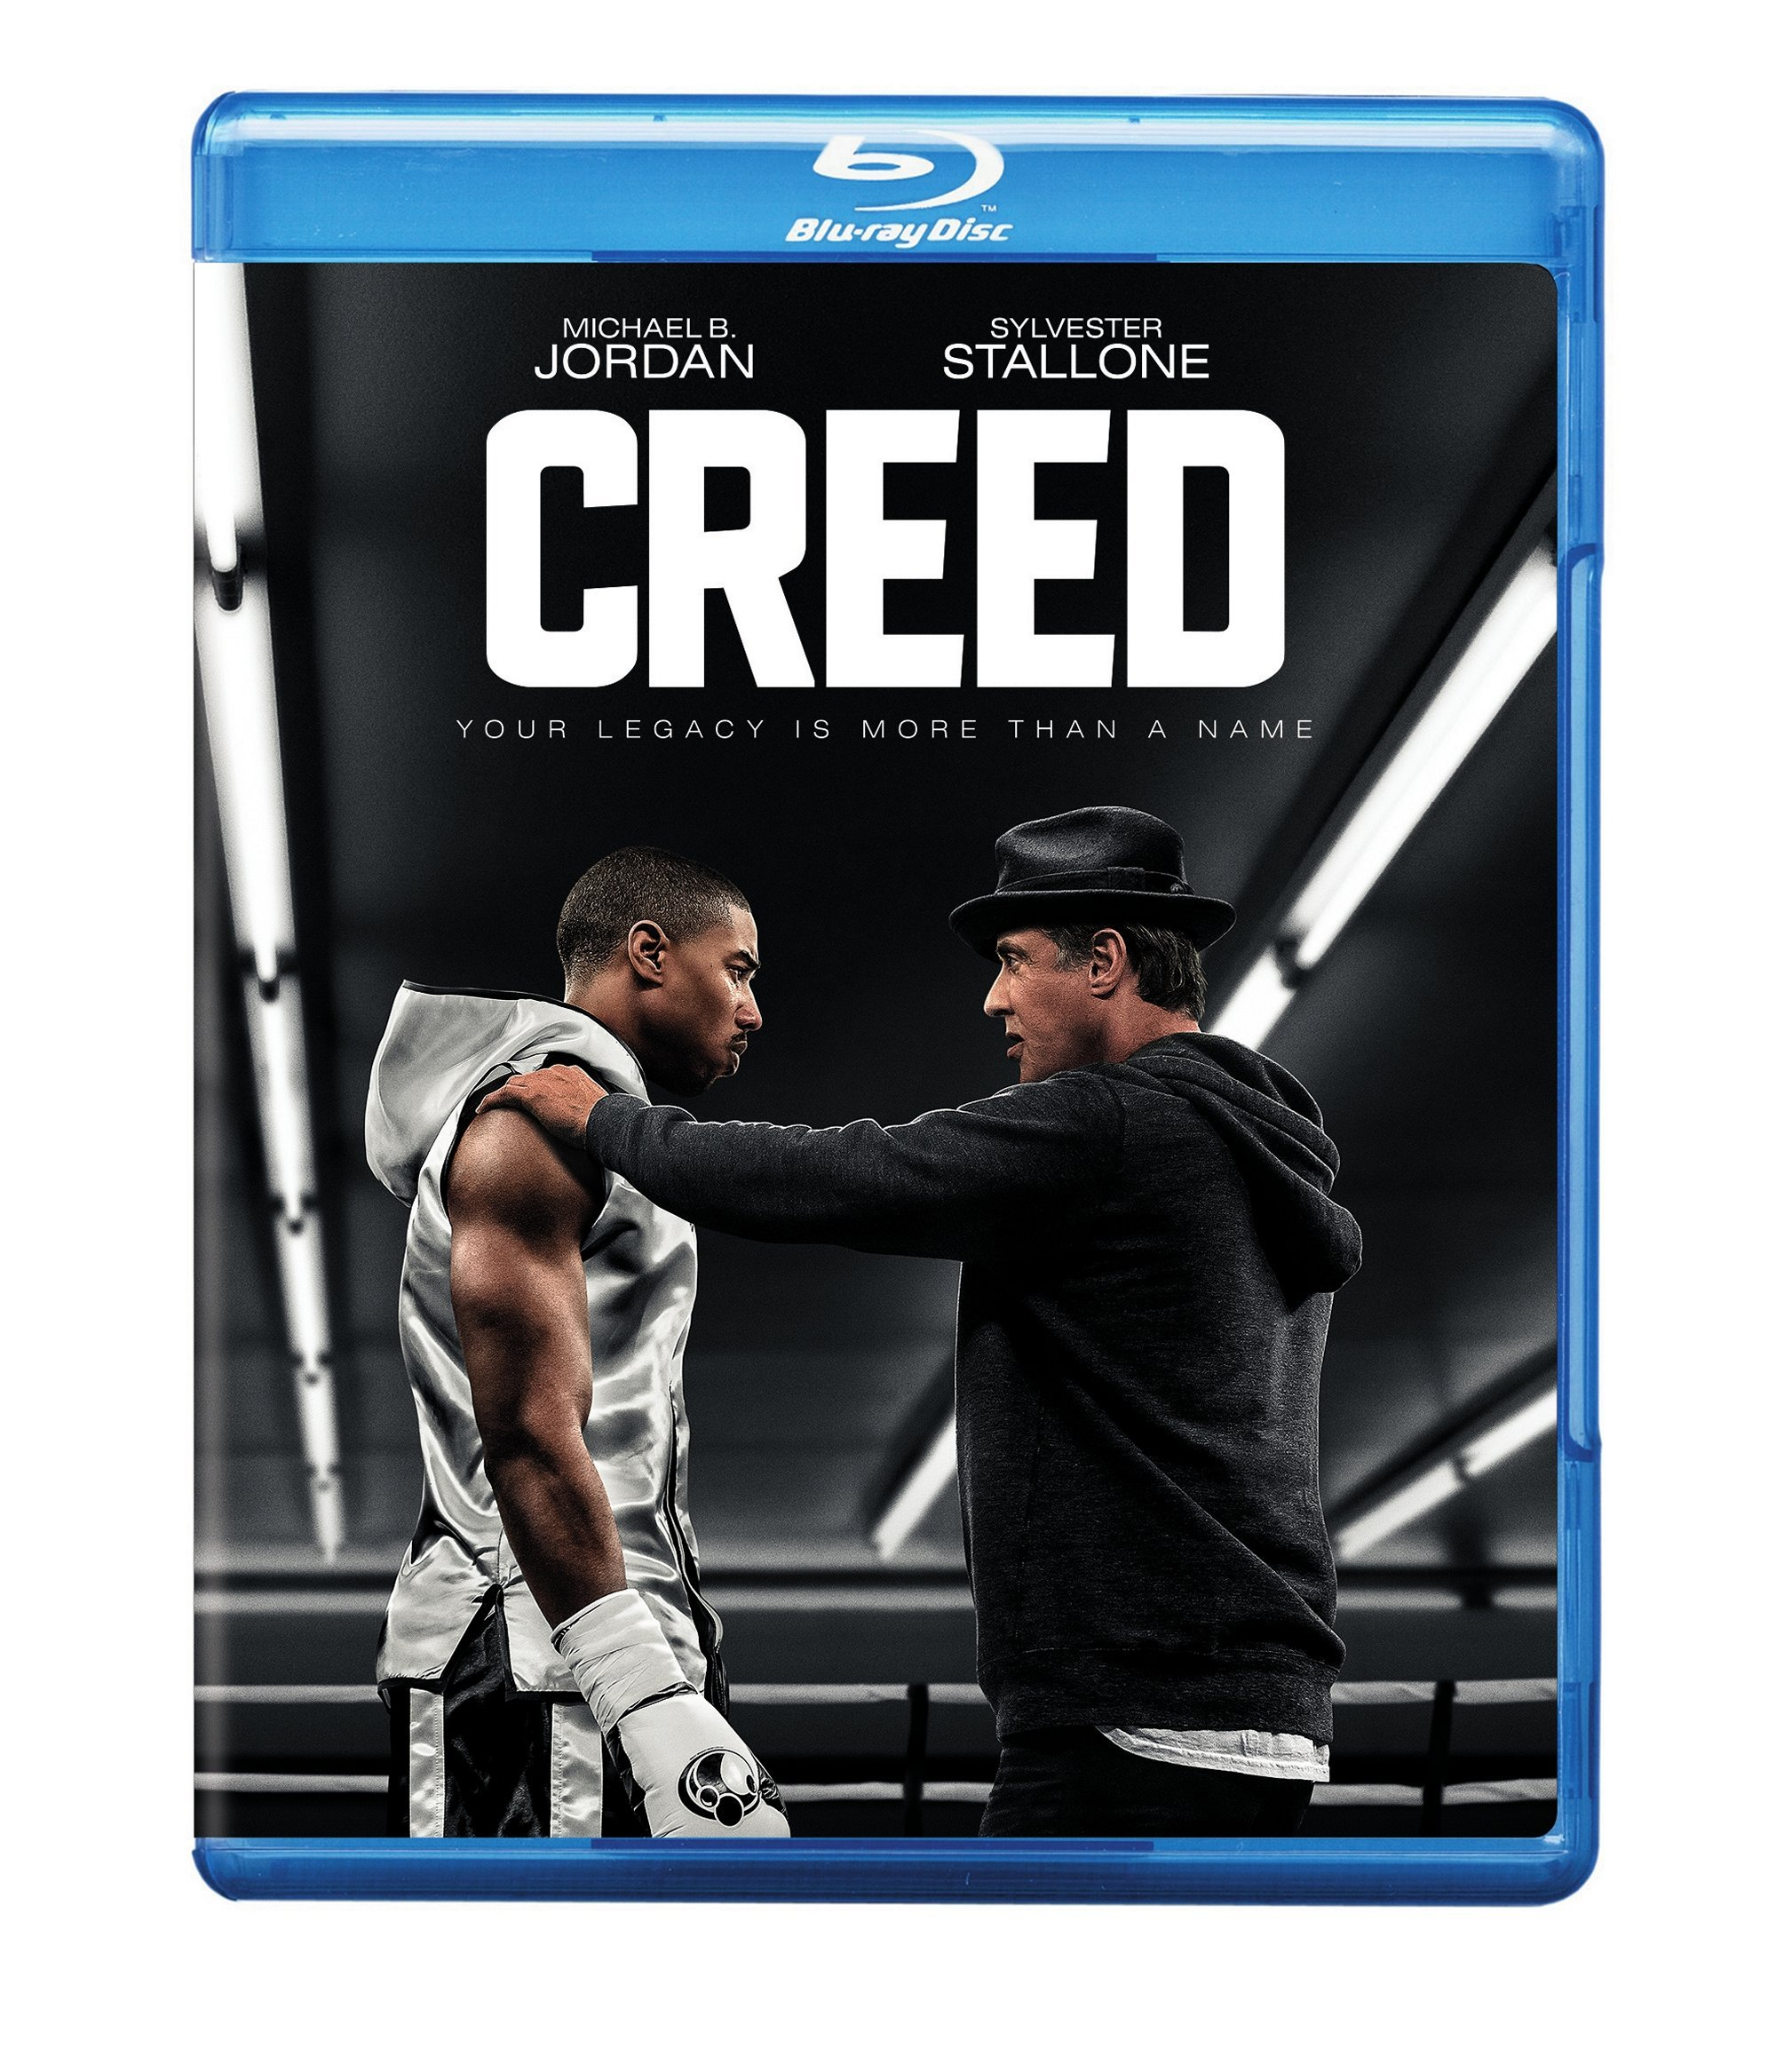 Blu-ray : Creed (With DVD, Ultraviolet Digital Copy, 2 Pack, Digitally Mastered in HD, 2 Disc)